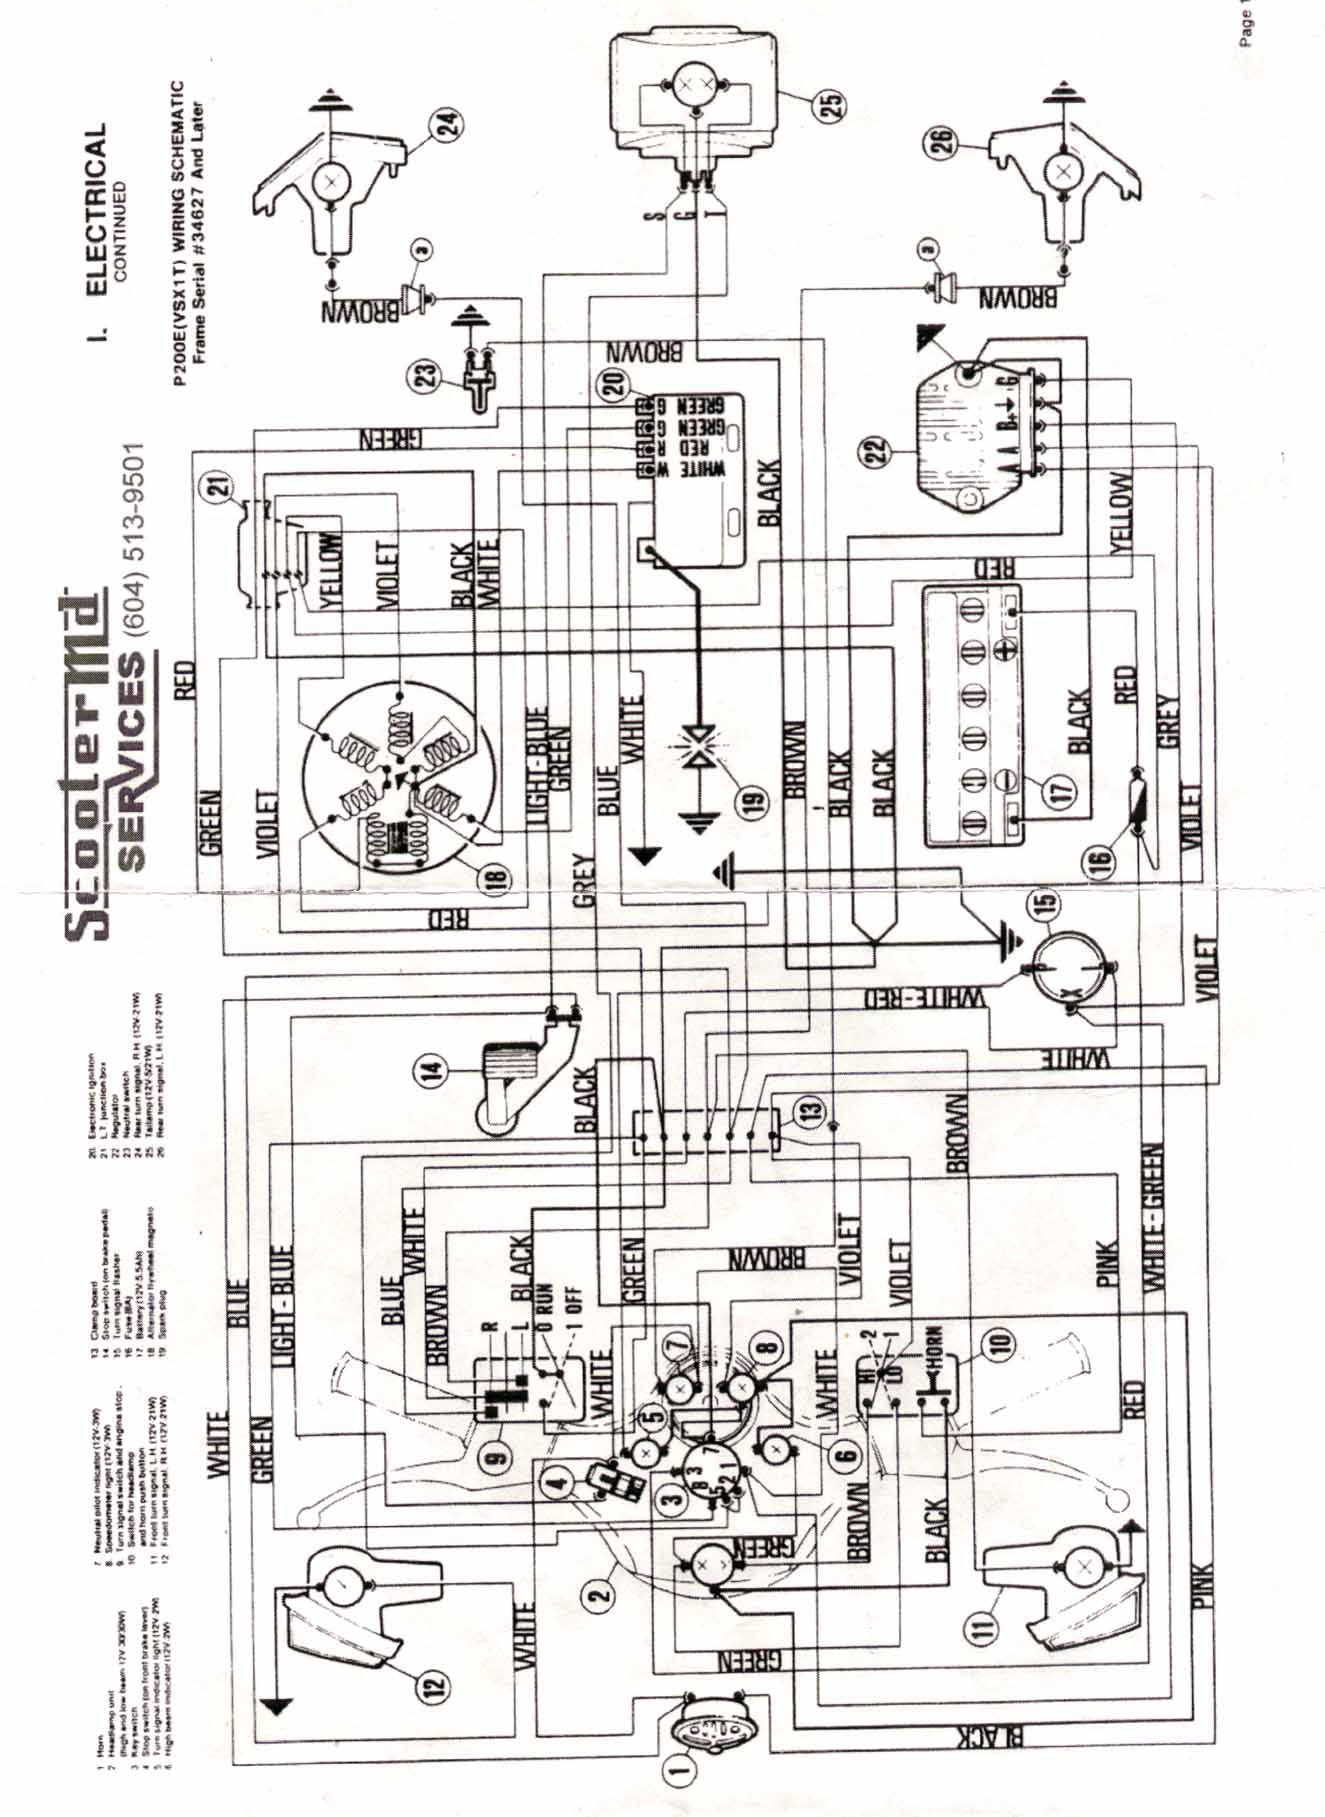 p200diag2 vespa p series maintenance & repair vespa p125x wiring diagram at highcare.asia